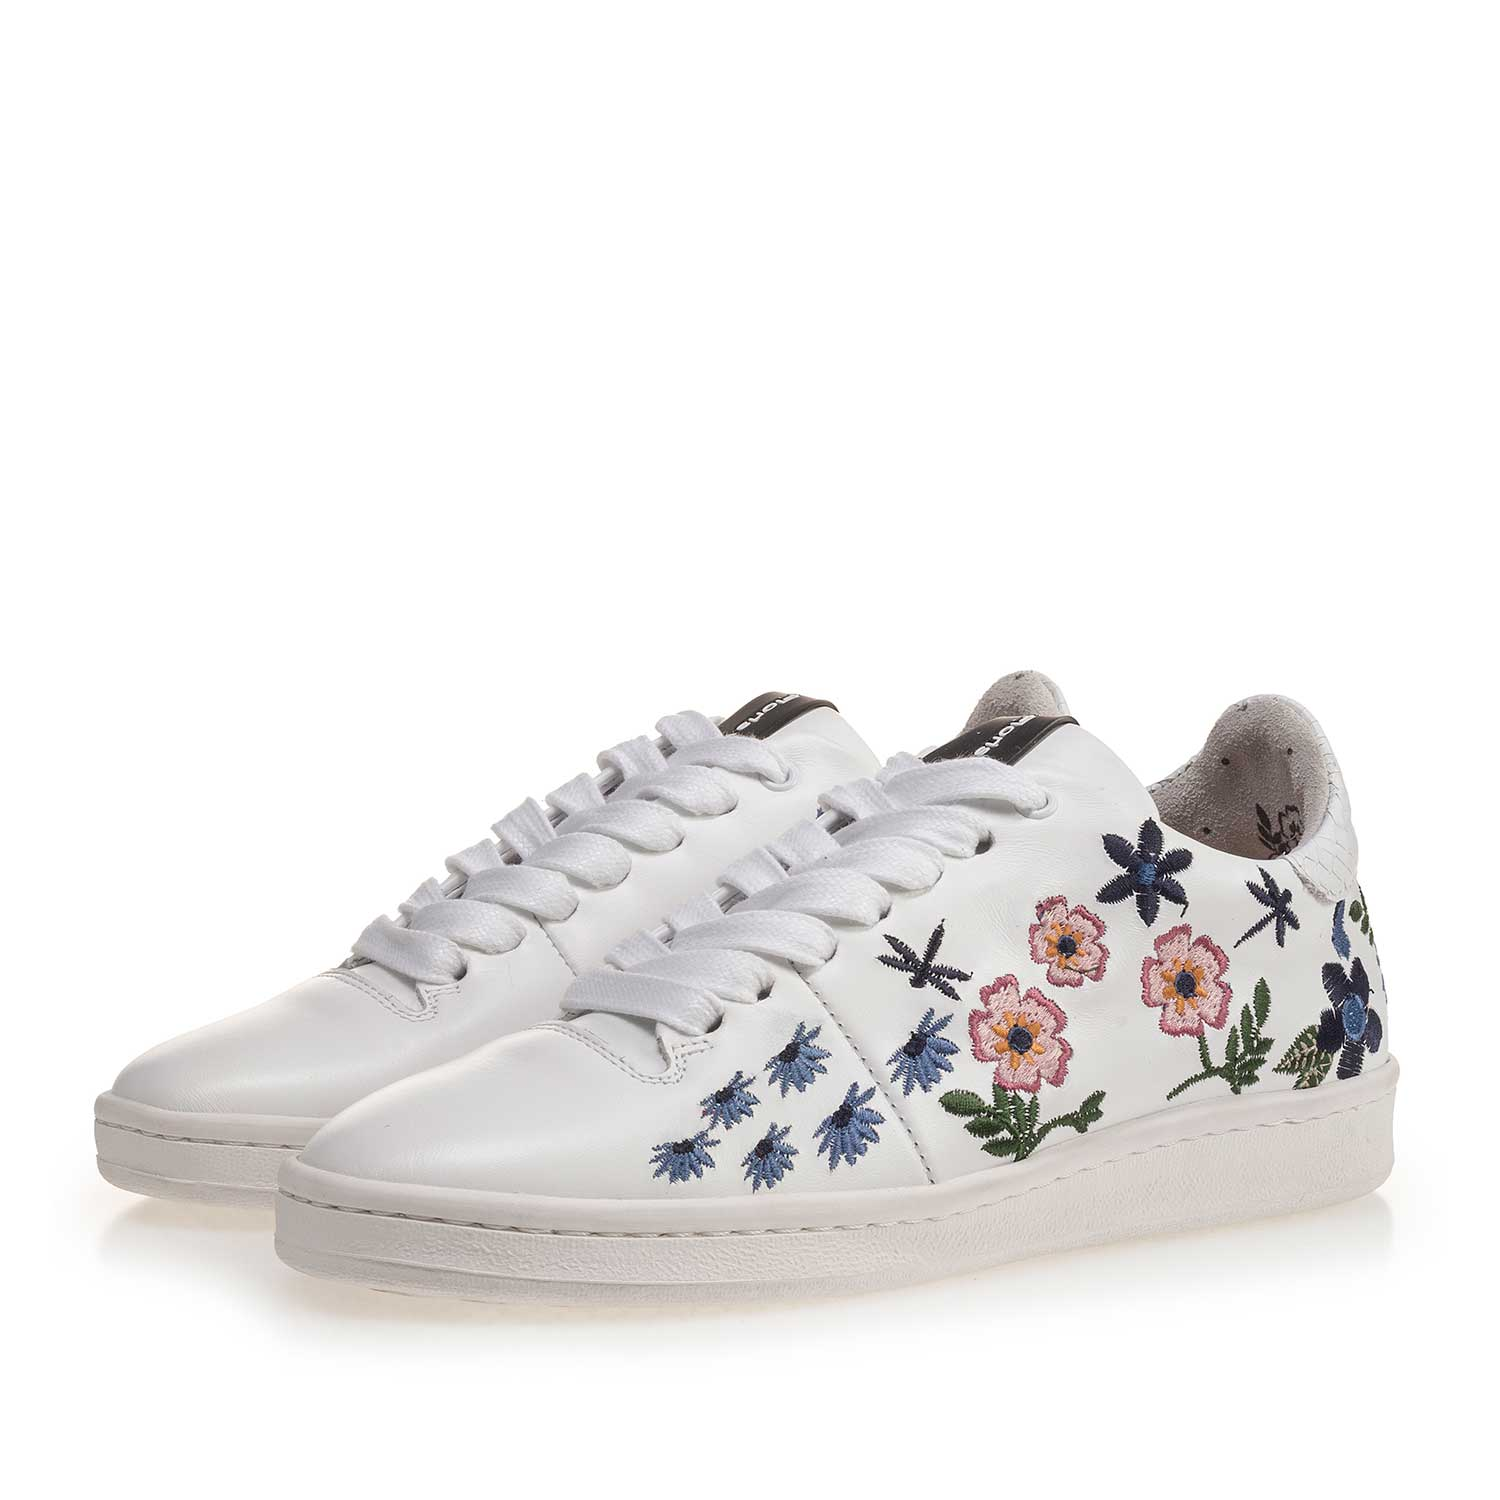 85235/04 - White leather sneaker with floral embroidery stitching